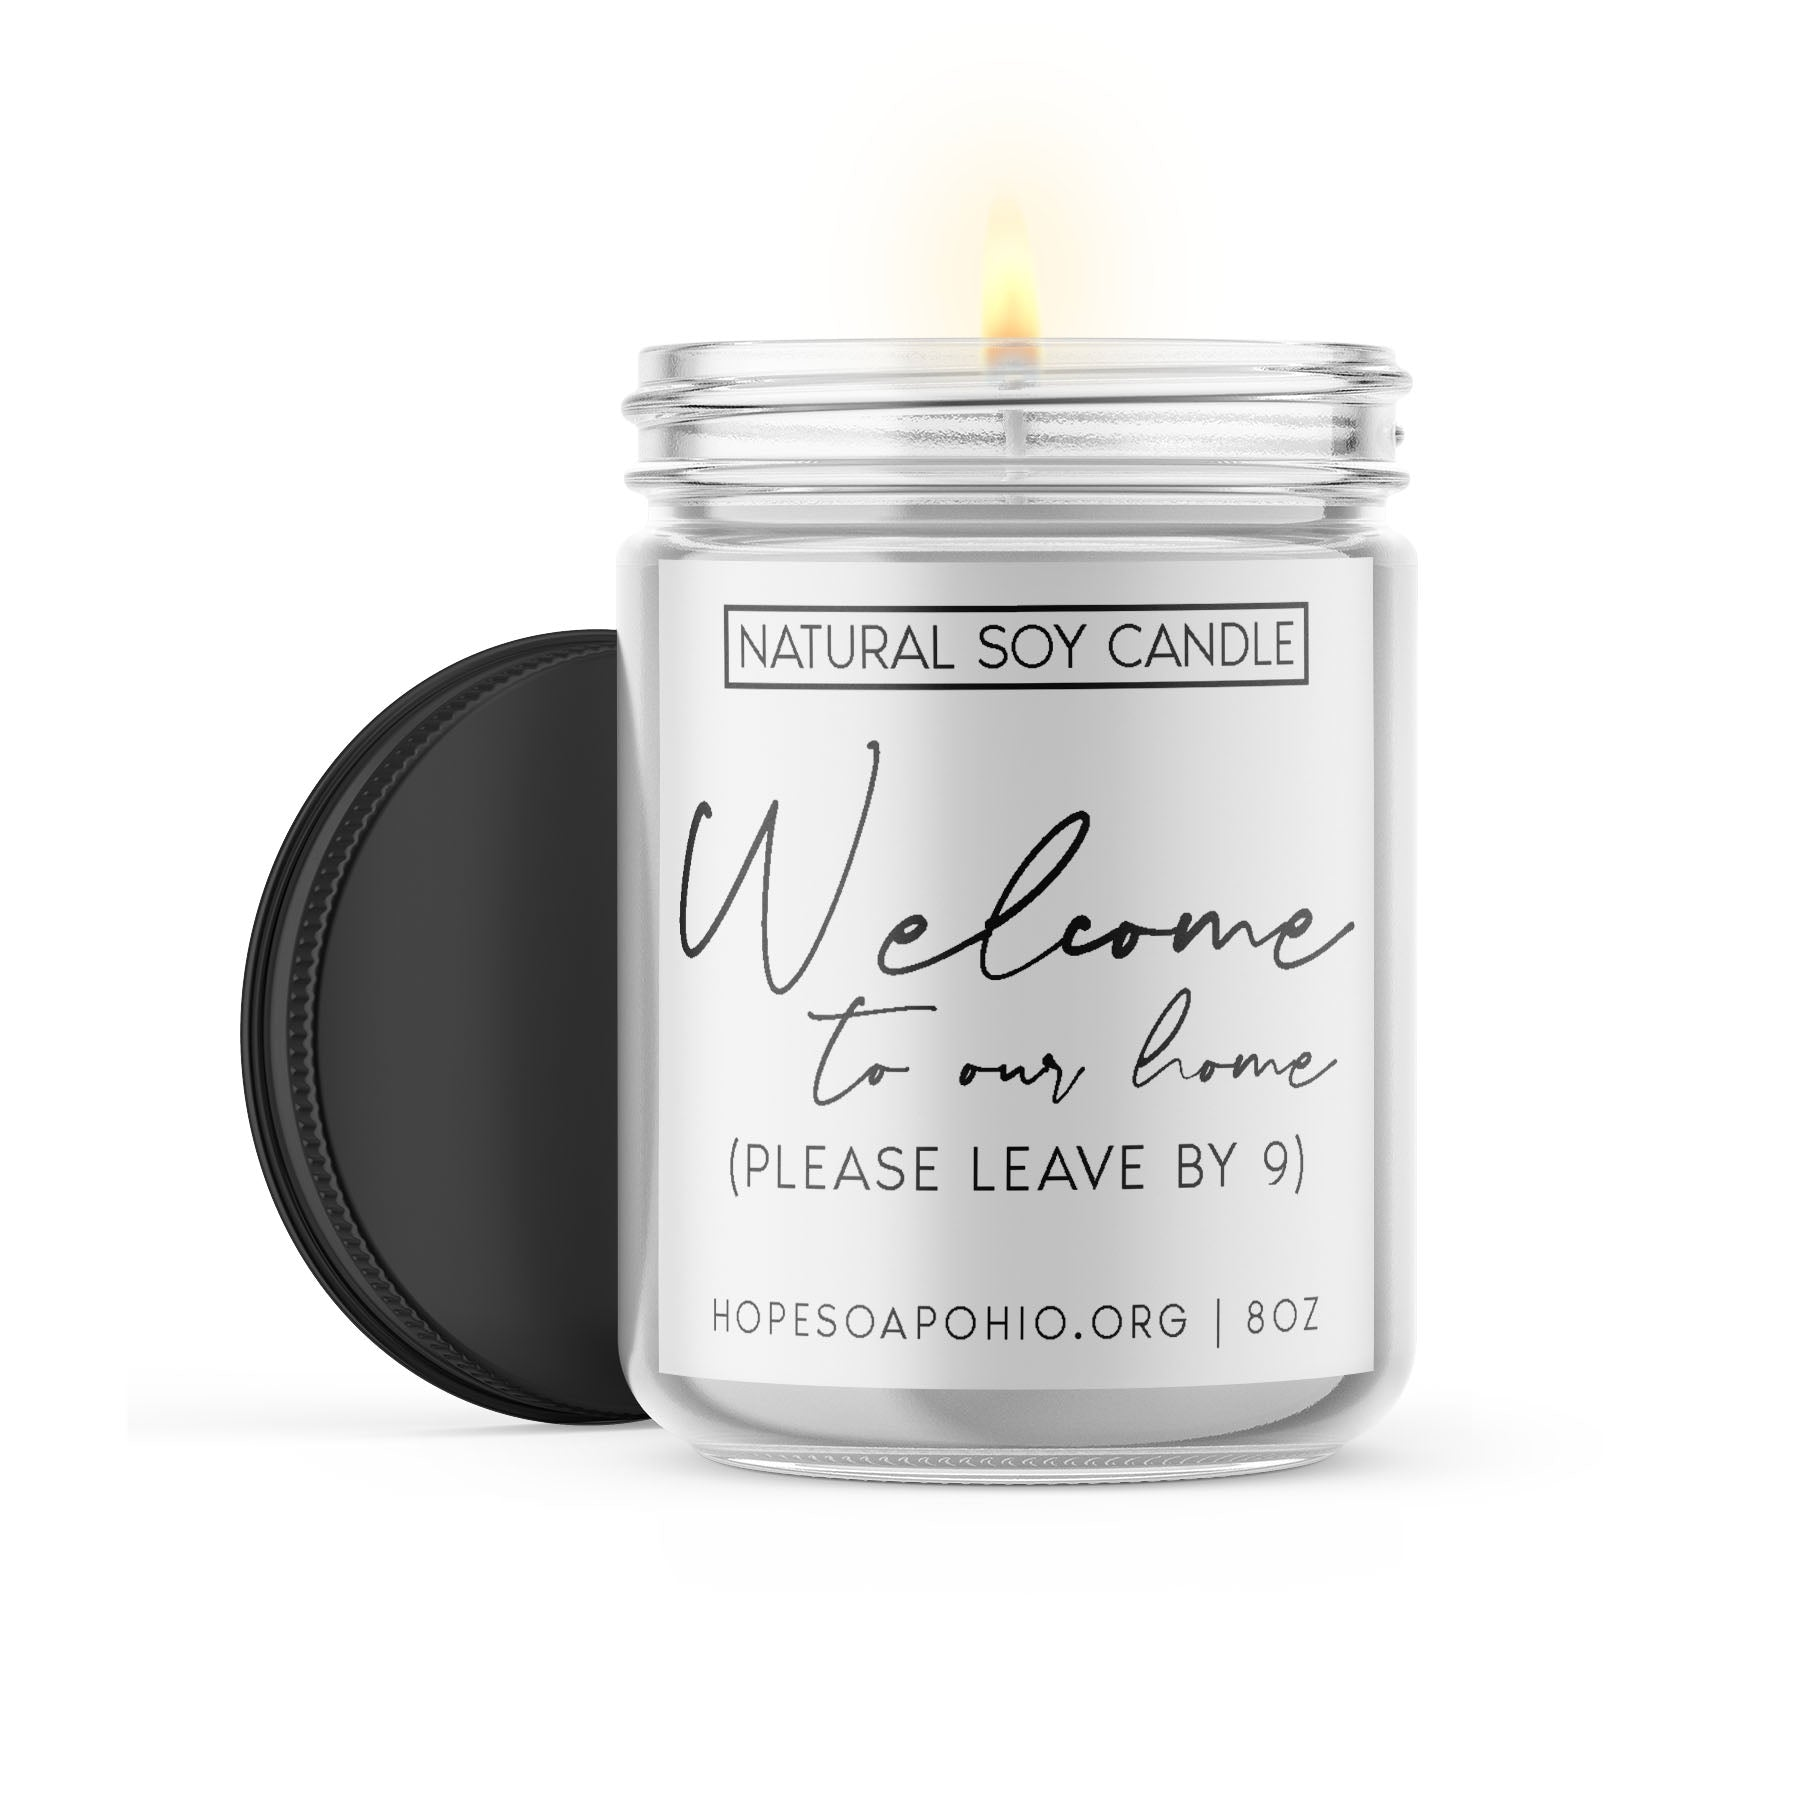 Welcome to our home candle - HOPESOAPOHIO